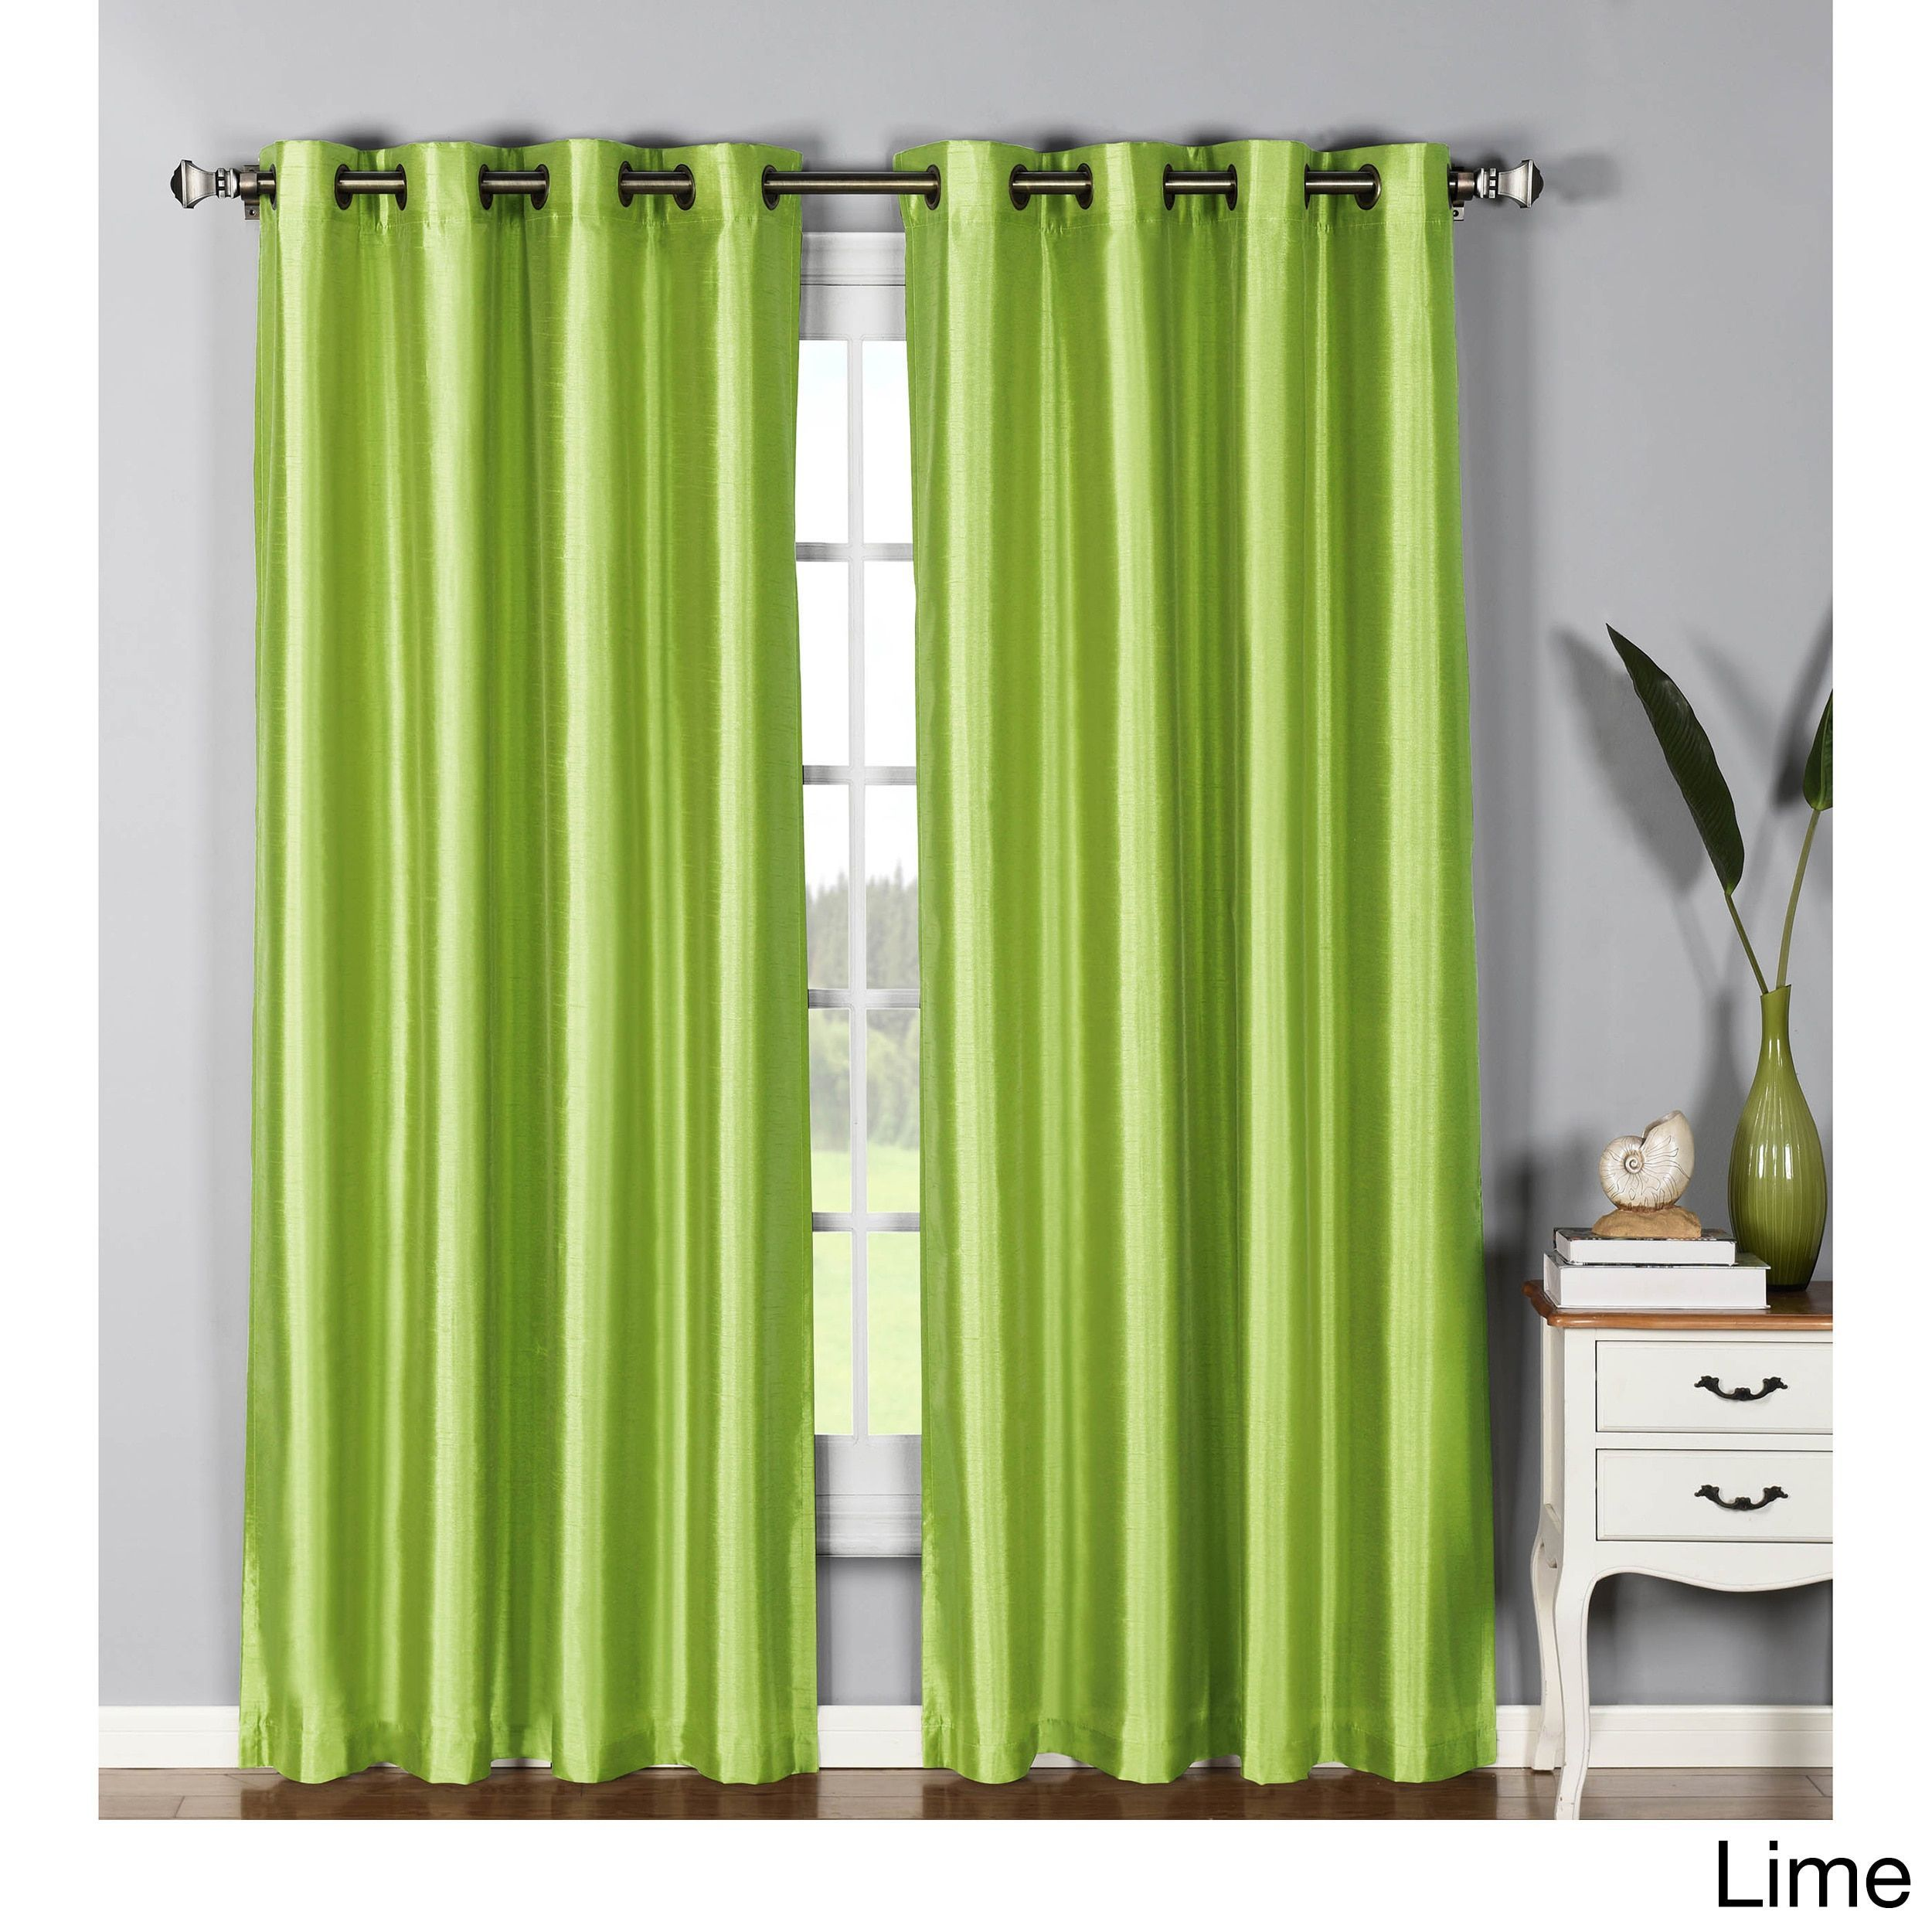 inch window curtain panel elements wide printed extra grommet juneau pin pair cotton curtains